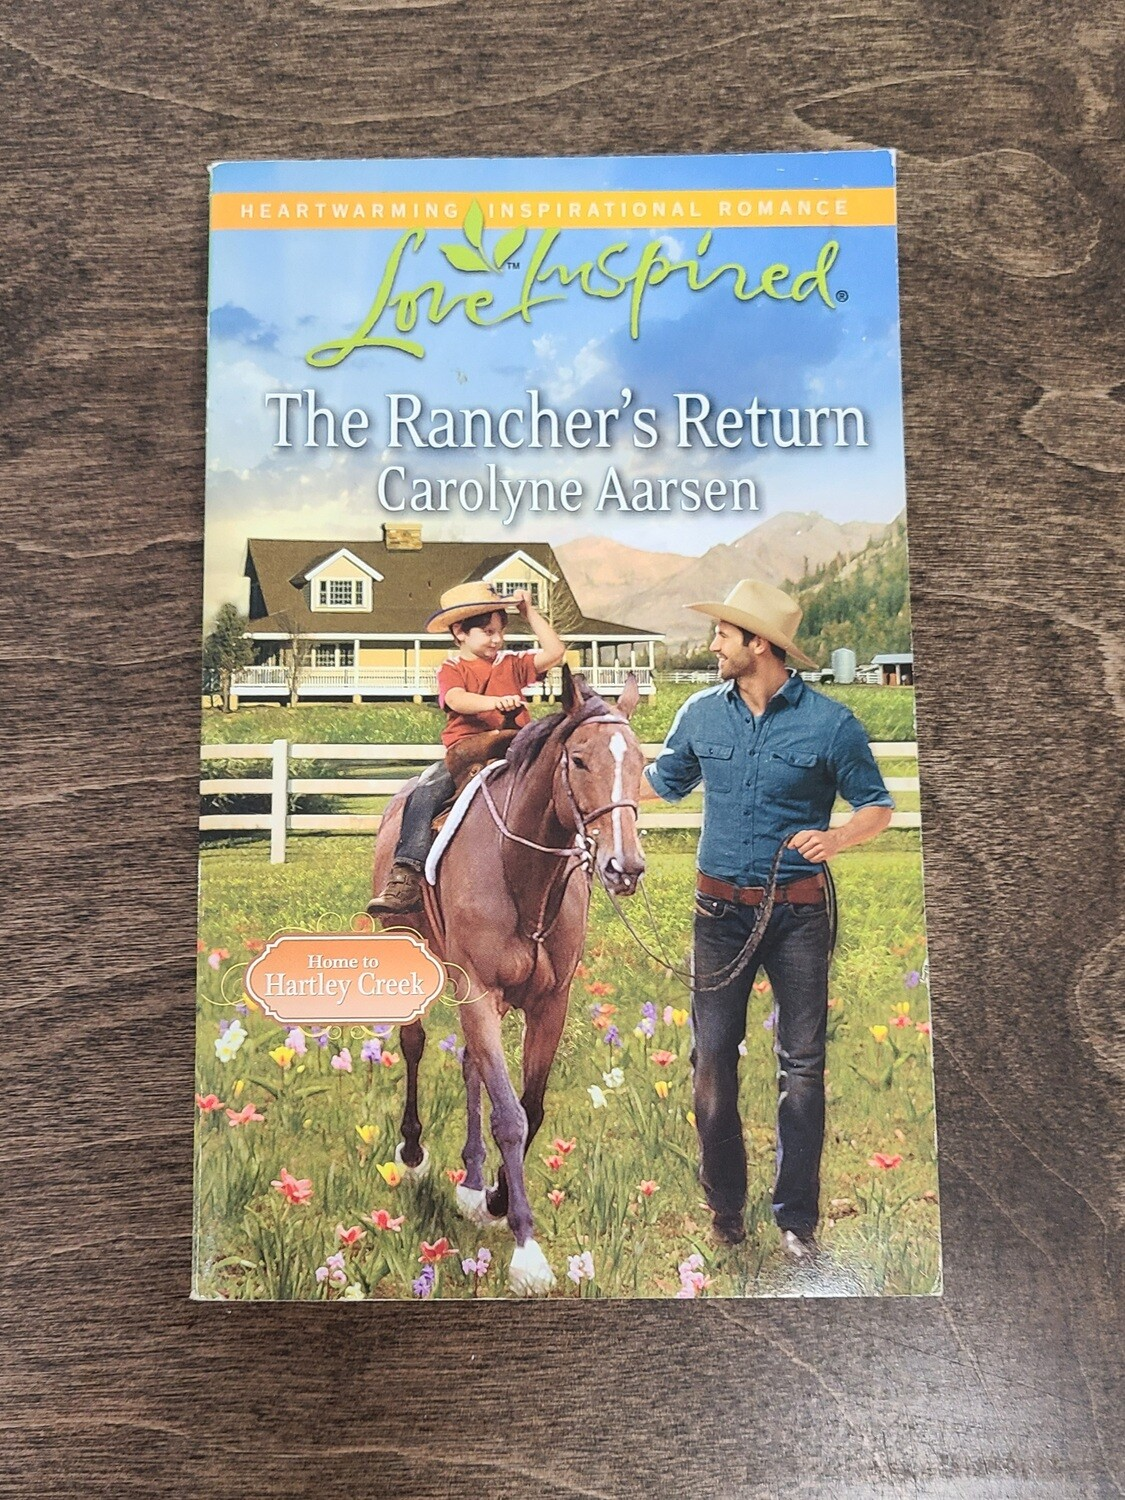 The Rancher's Return by Carolyne Aarsen